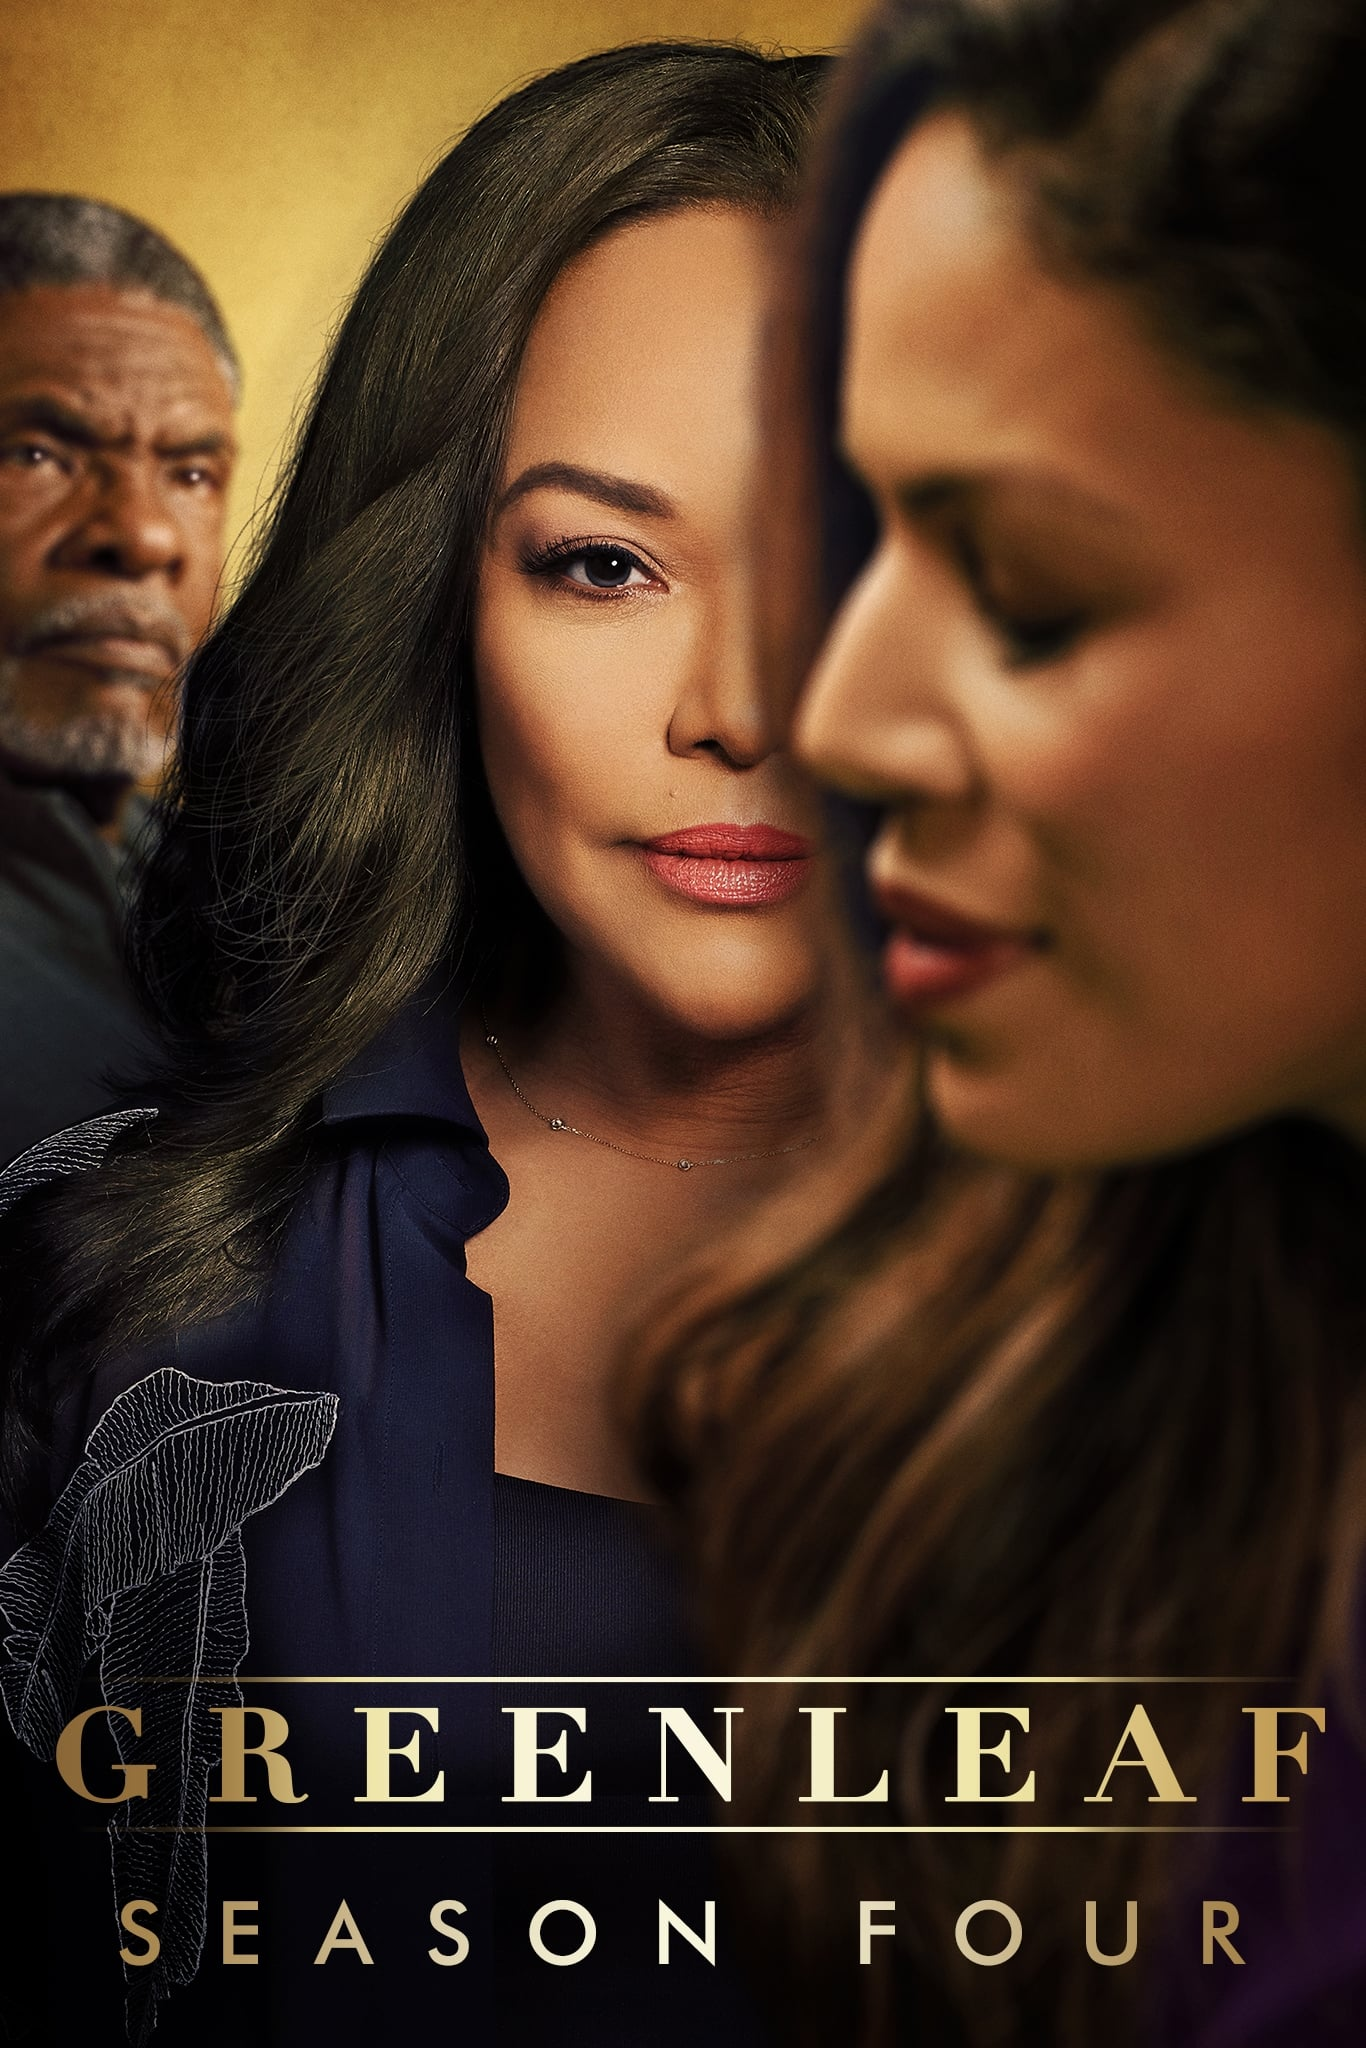 Greenleaf Season 4